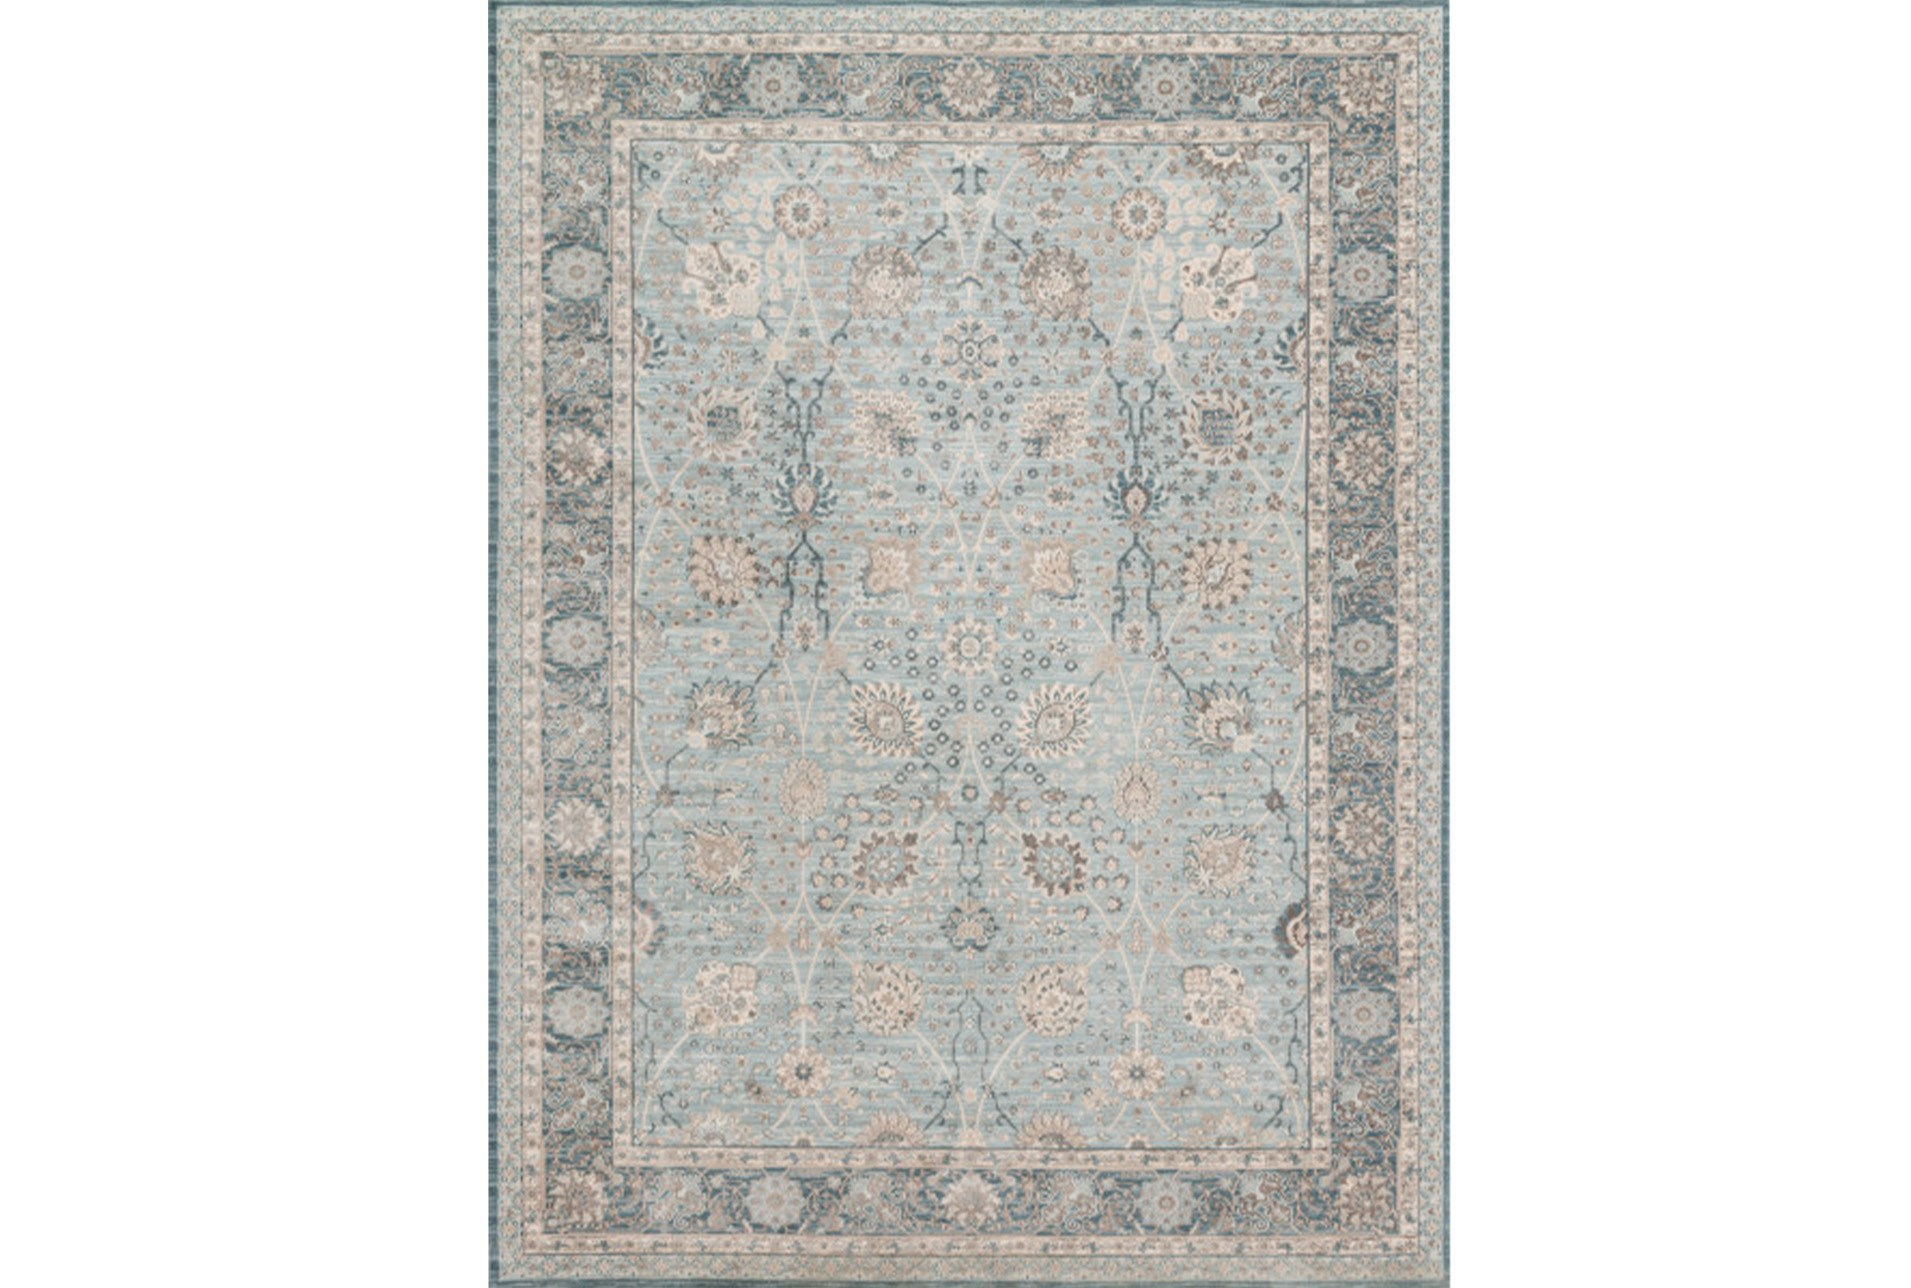 94x126 Rug Magnolia Home Ella Rose Lt Blue Dk By Joanna Gaines Qty 1 Has Been Successfully Added To Your Cart